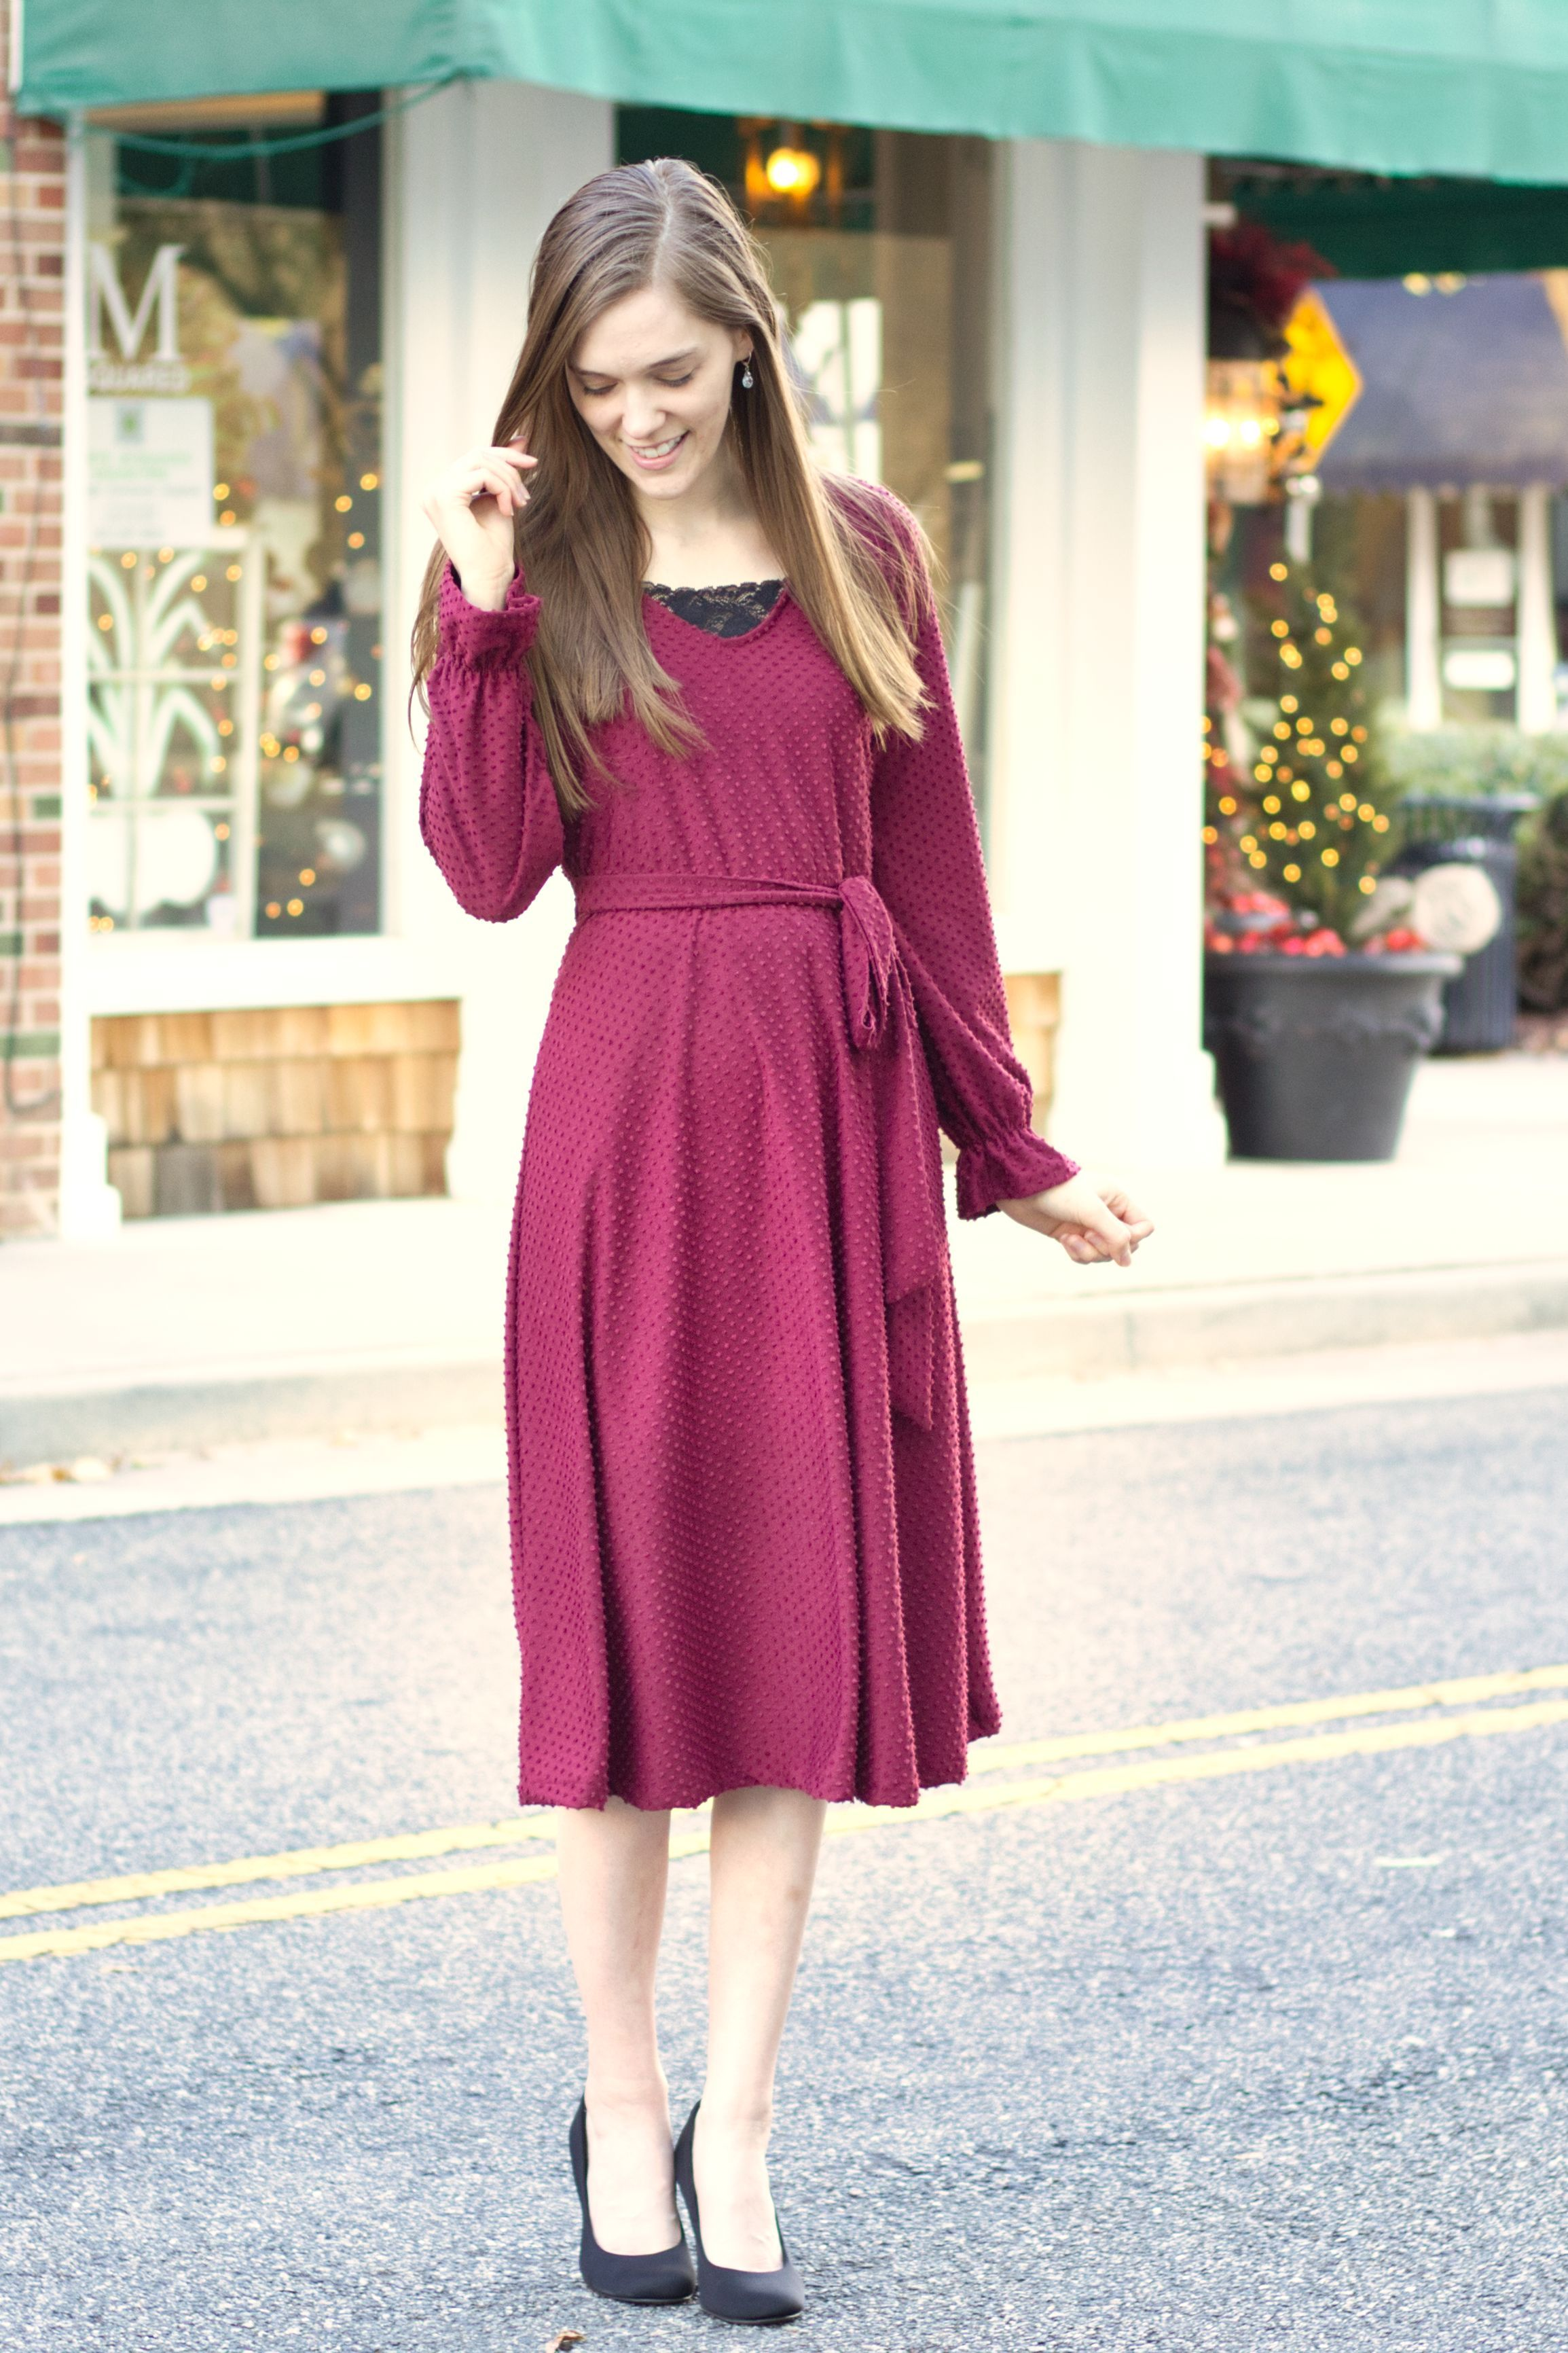 Modest Dressy Outfit Idea For Church Dressy Outfits Outfit Ideas For Church Style Inspiration Classy [ 3464 x 2309 Pixel ]